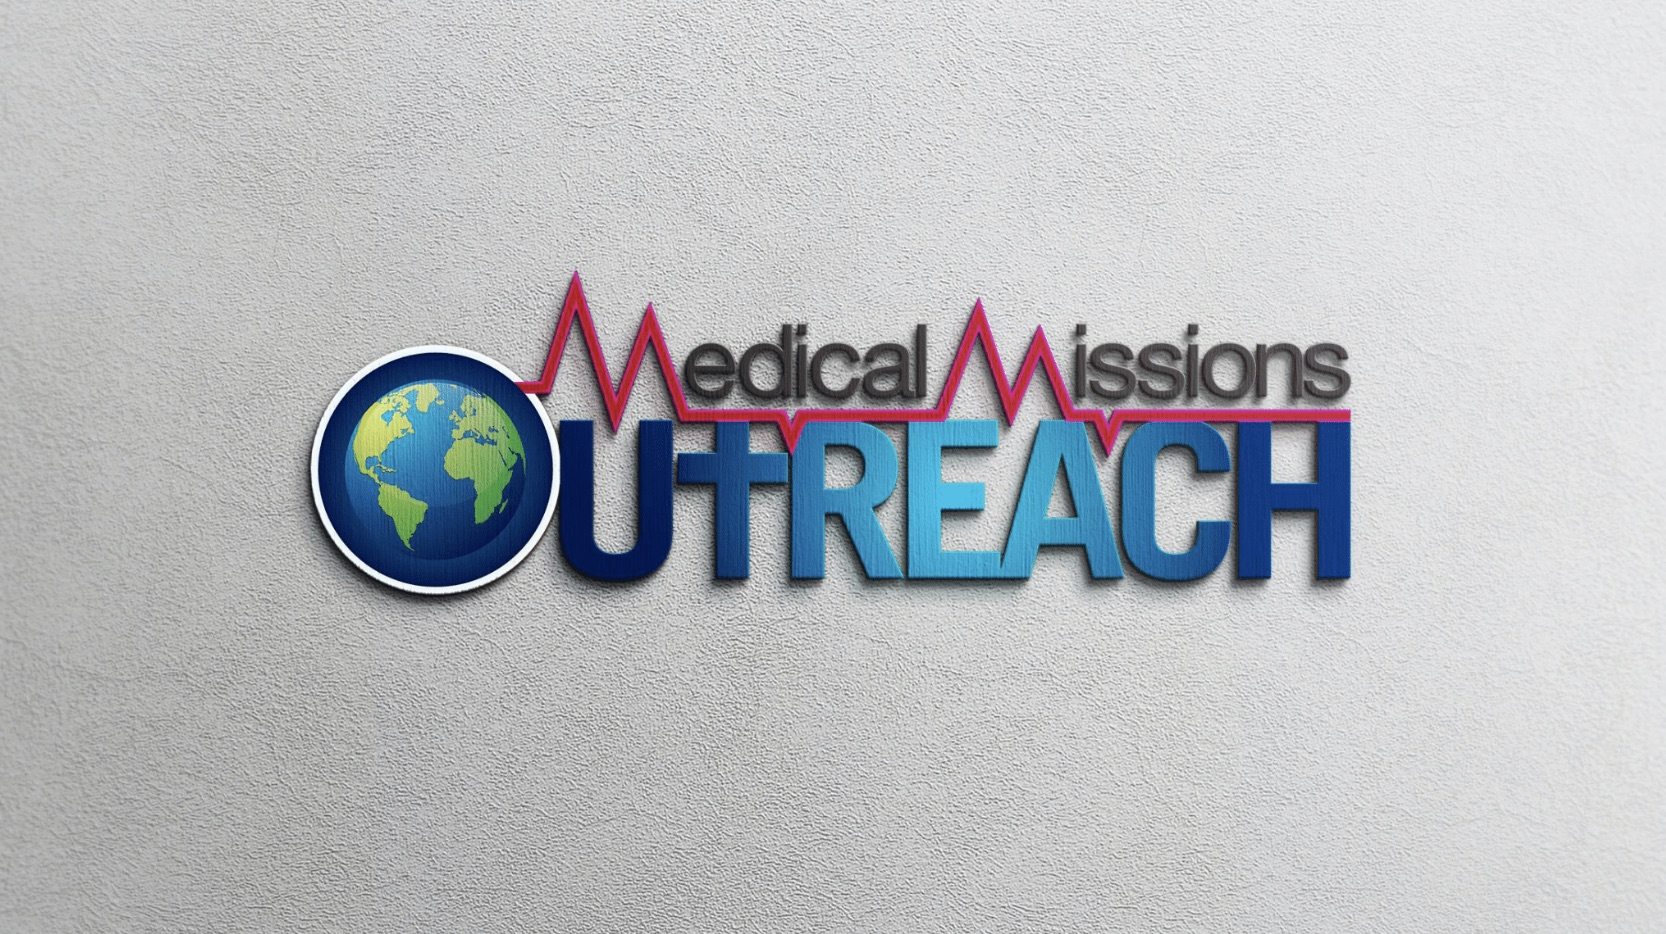 Medical Missions Outreach